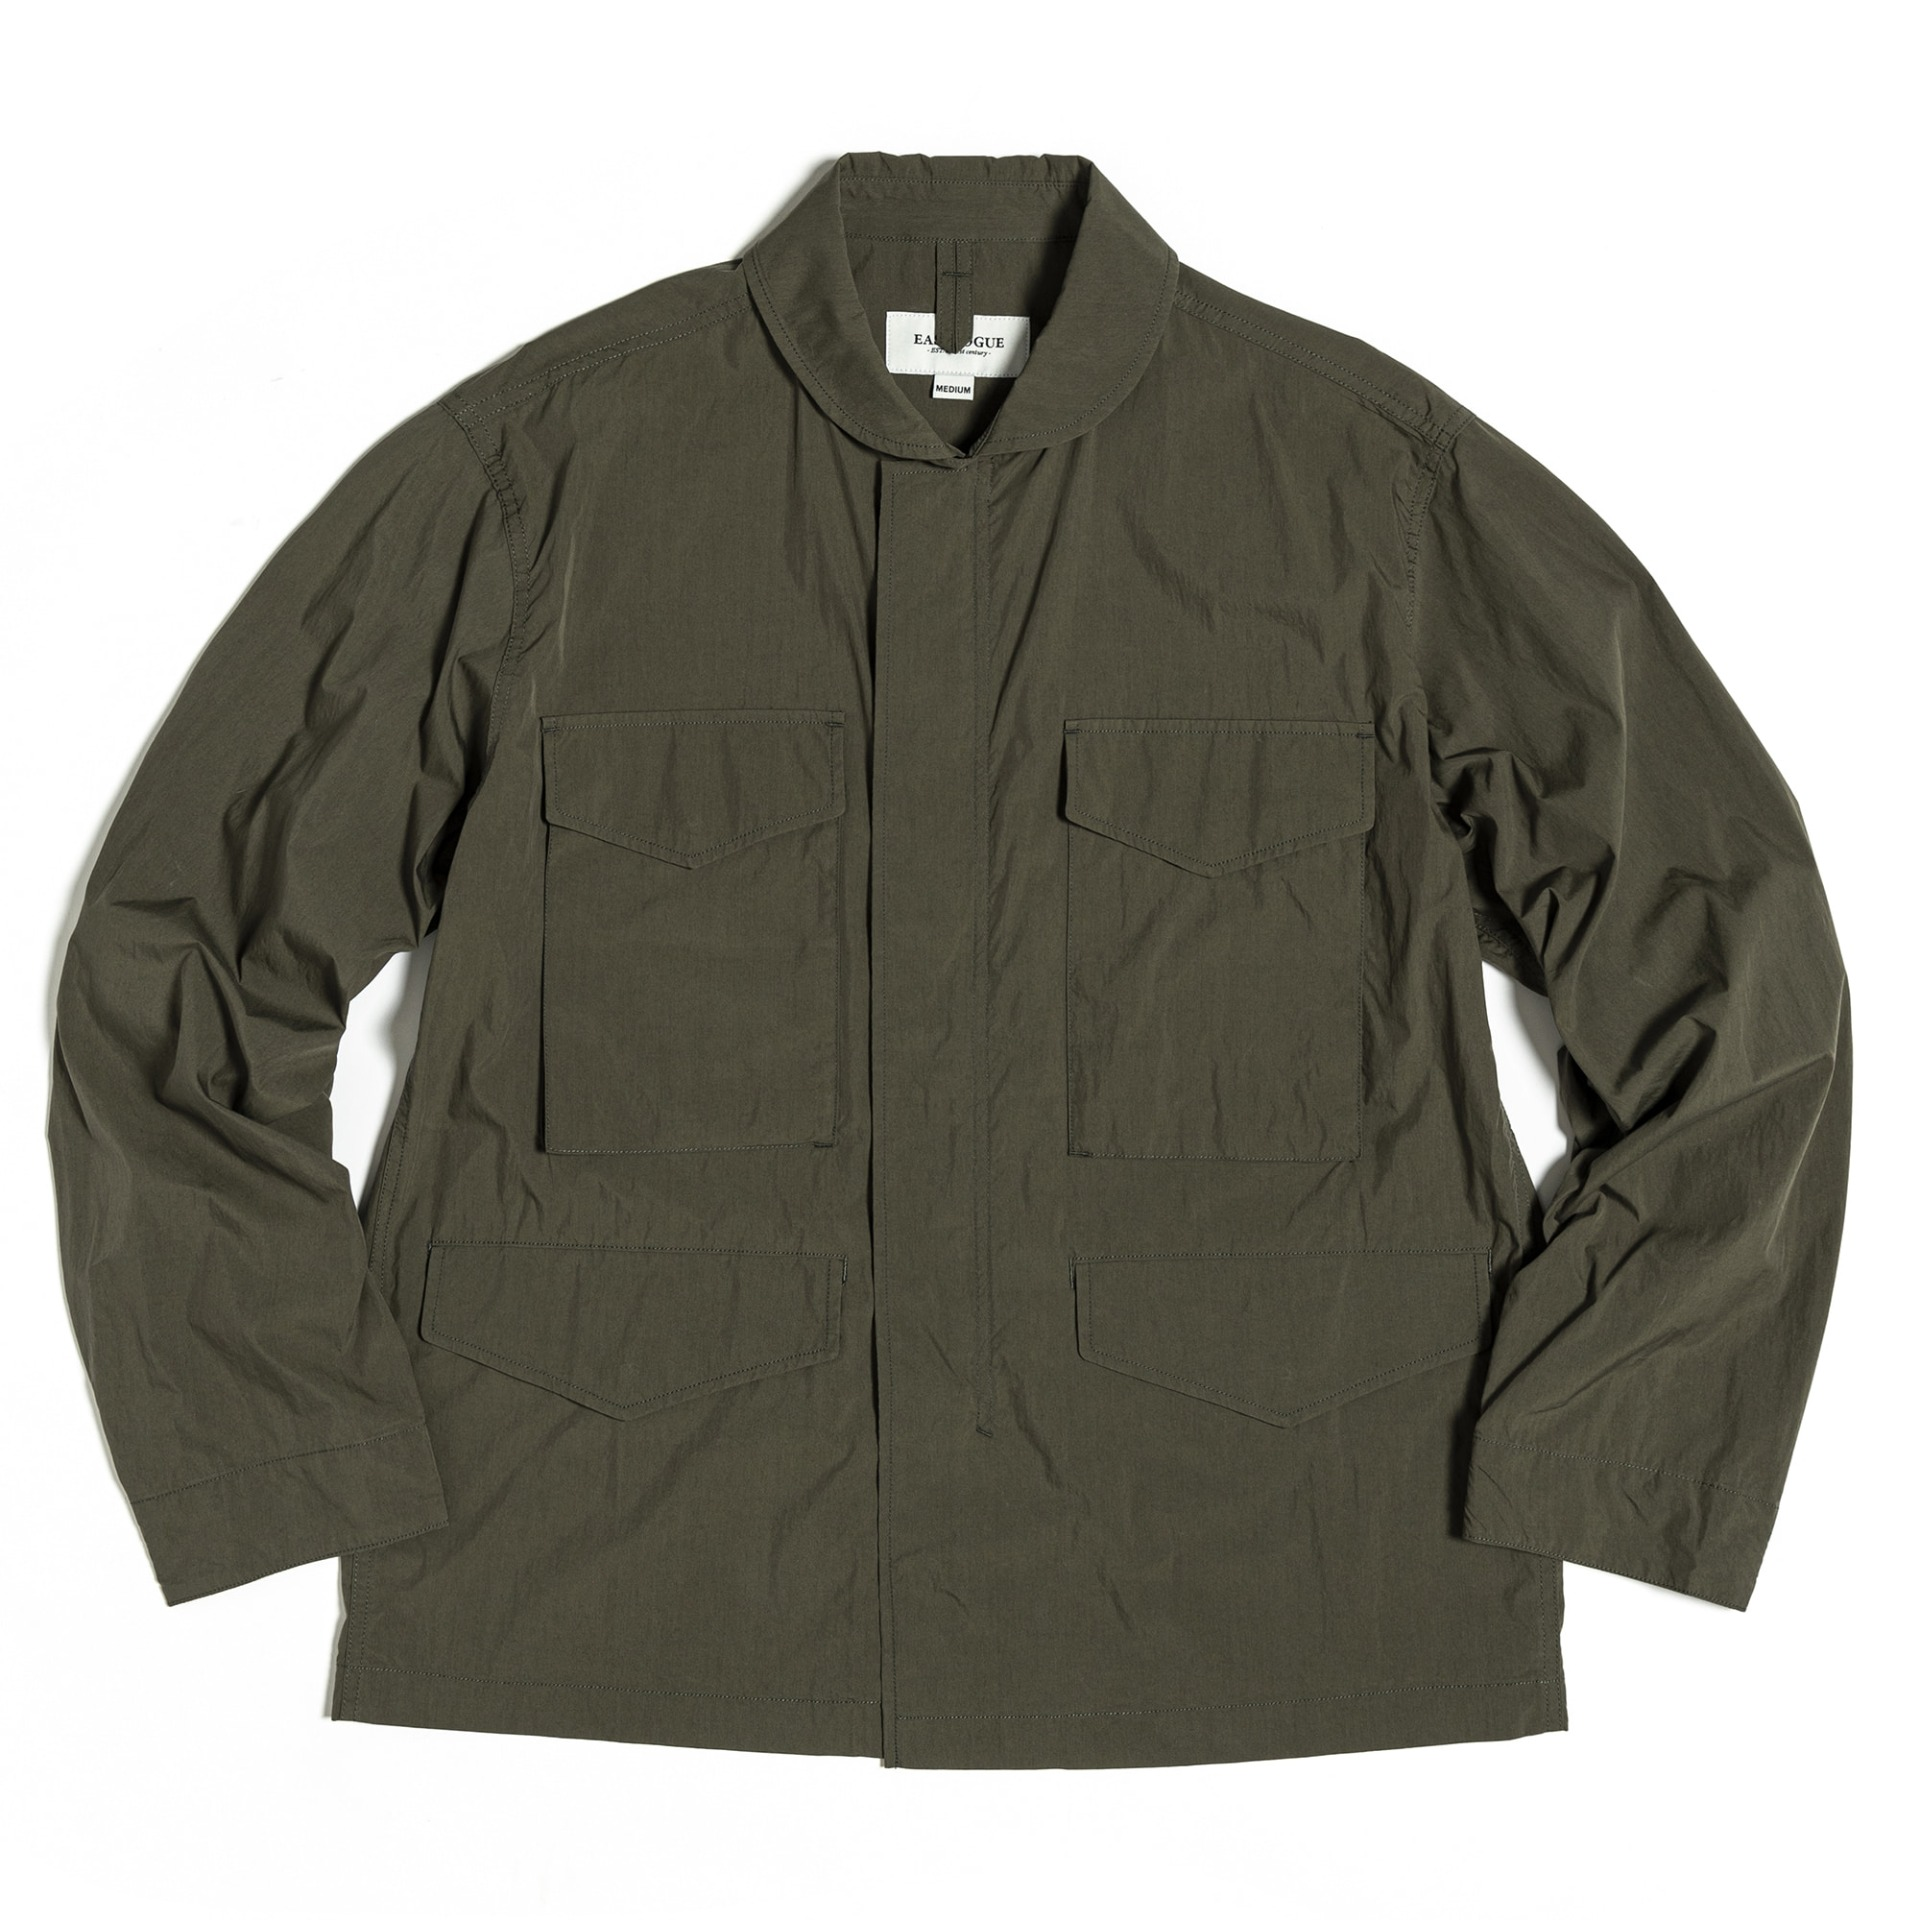 M21 FIELD JACKET (Olive Washer)